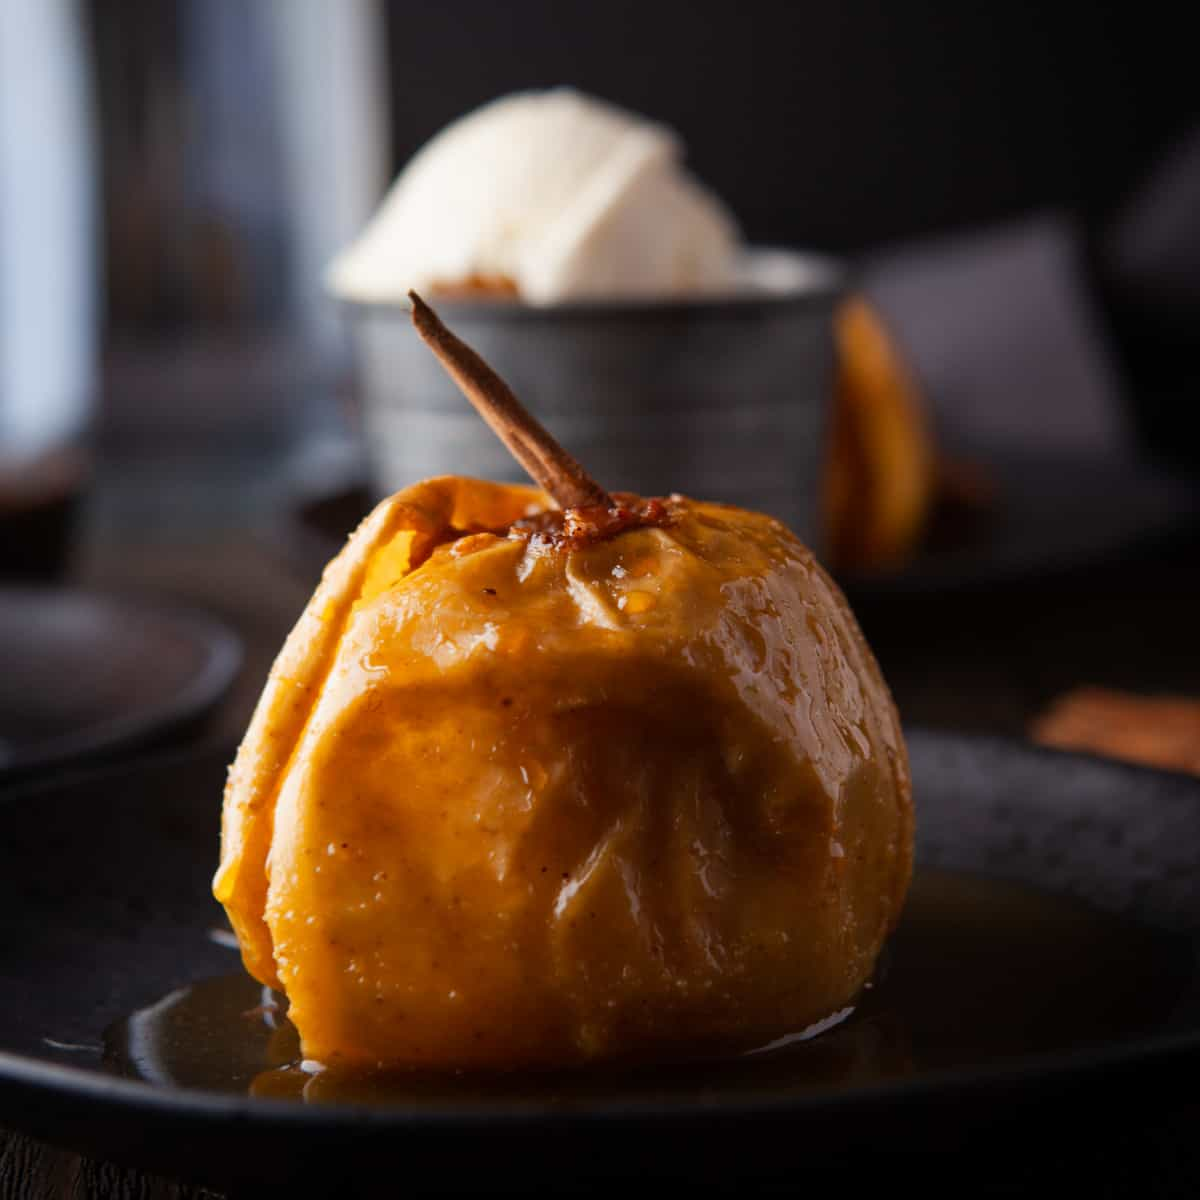 Close-up of a Cinnamon Baked Apple on a black plate